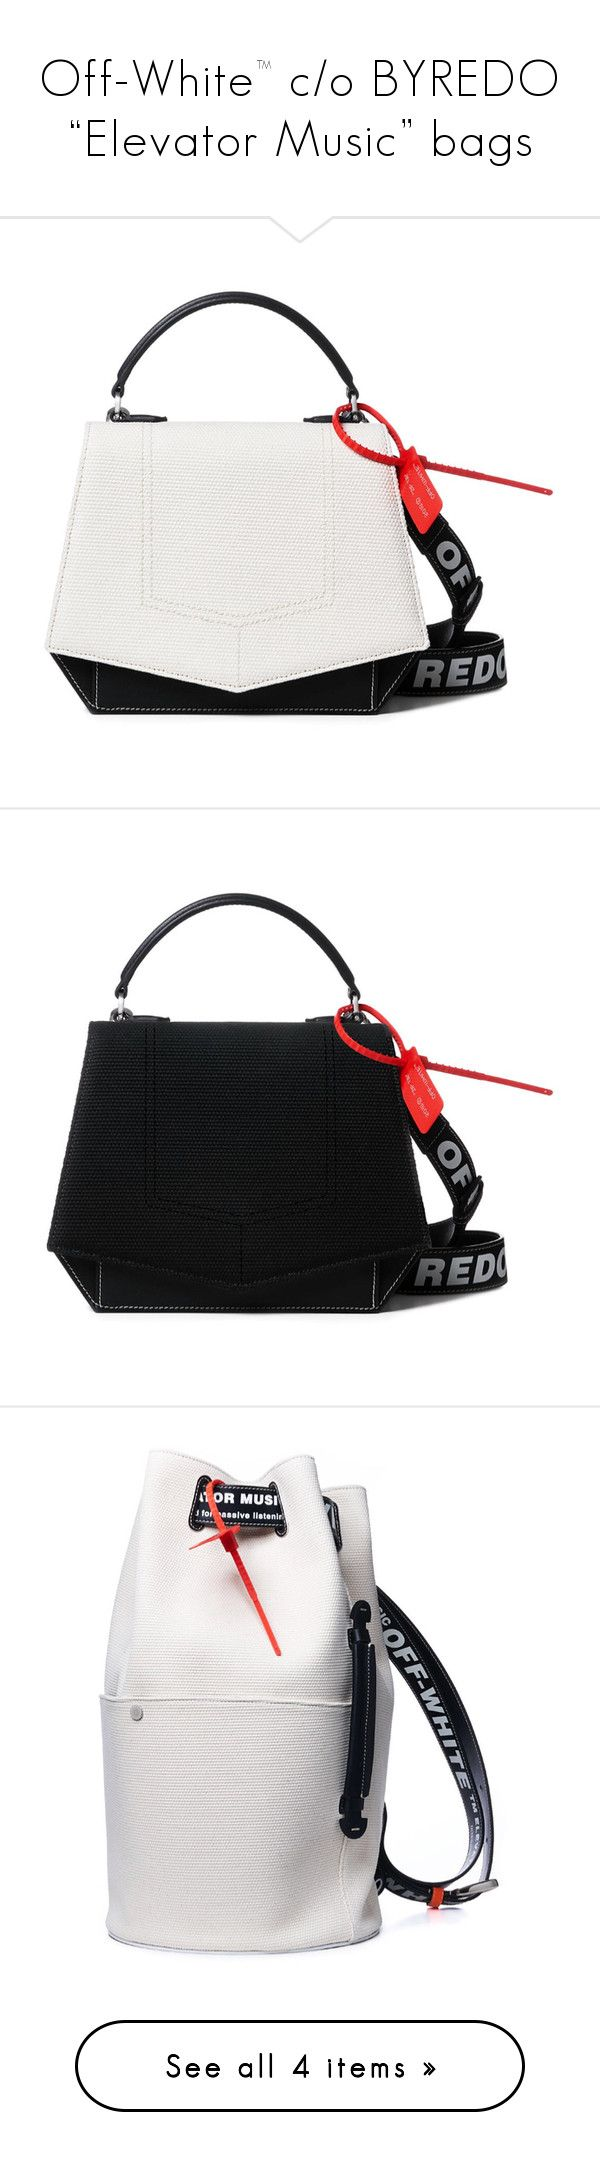 """""""Off-White™ c/o BYREDO """"Elevator Music"""" bags"""" by a4styled ❤ liked on Polyvore"""